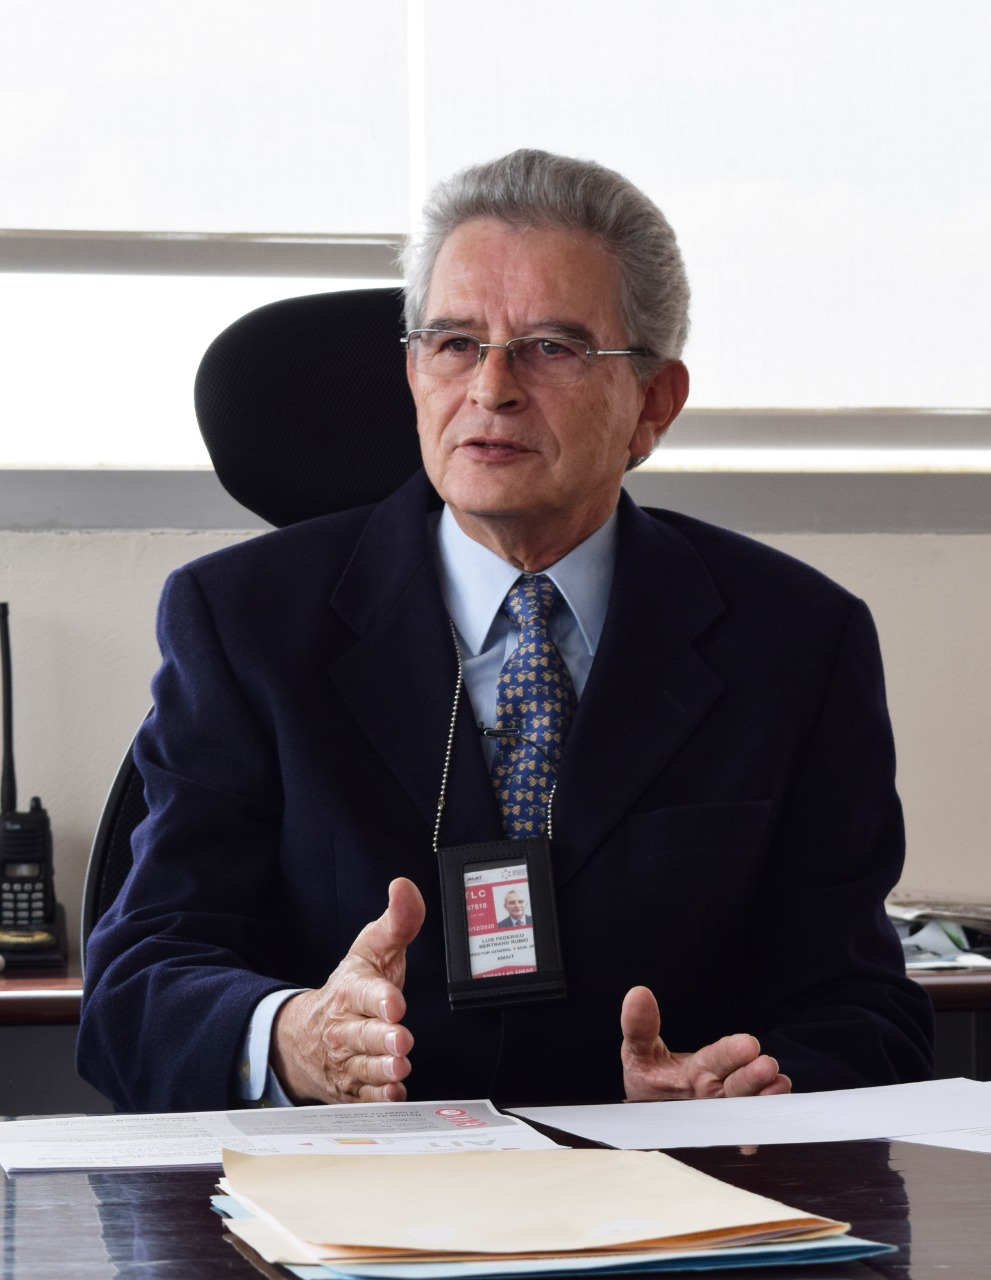 Toluca 'ready' to join AMLO's 3-airport system